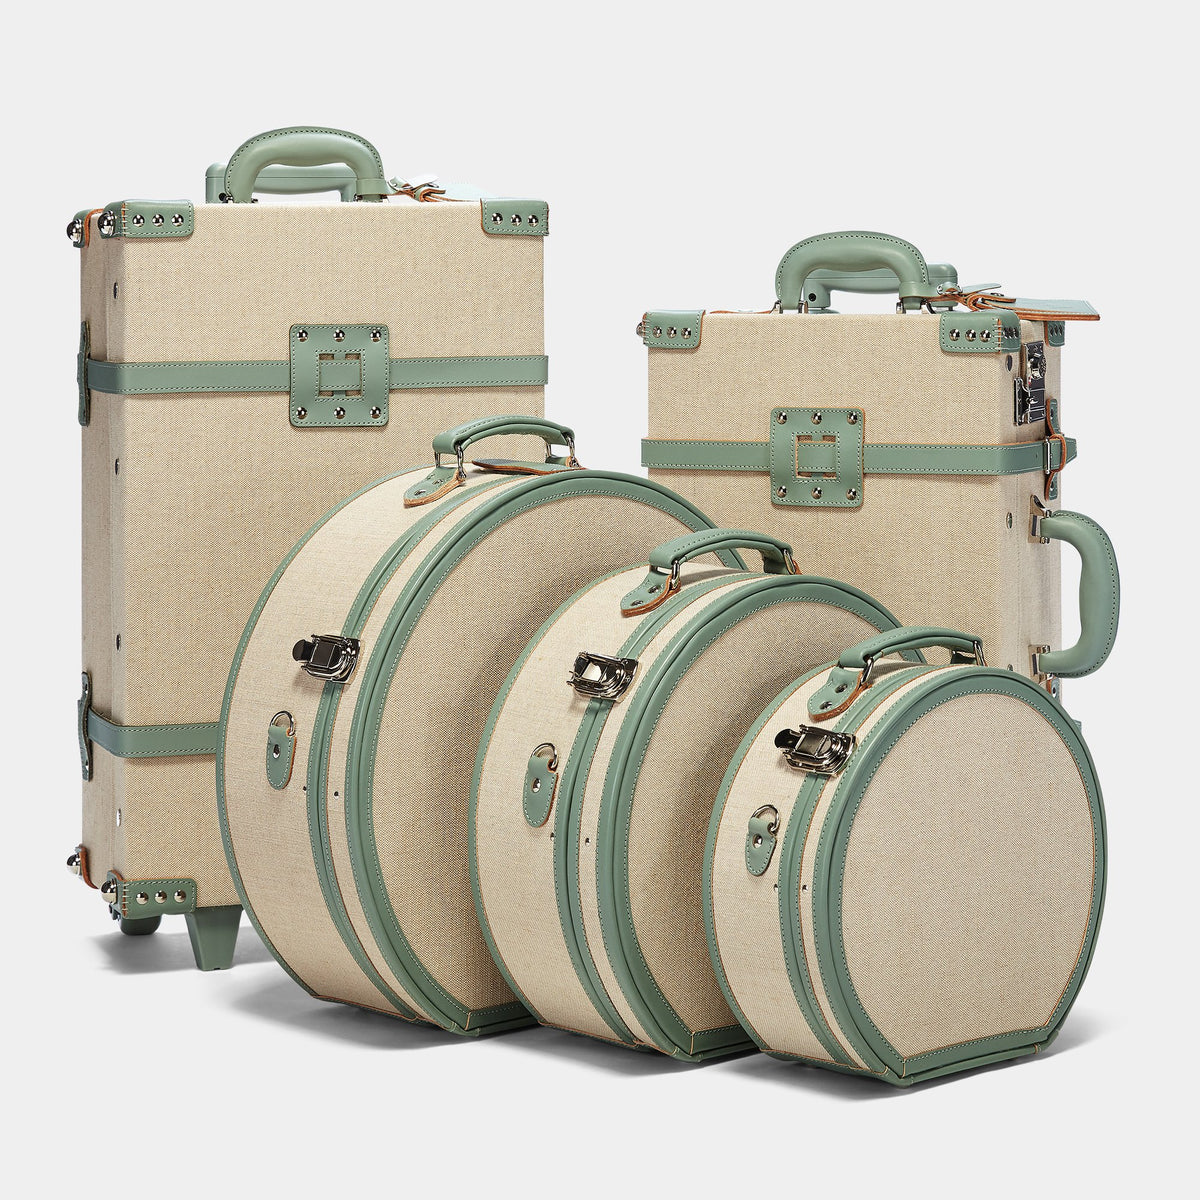 The Editor Hatbox Deluxe in Seagreen - Hat Box Luggage -Hatbox Deluxe with matching Editor Cases and Hatboxes